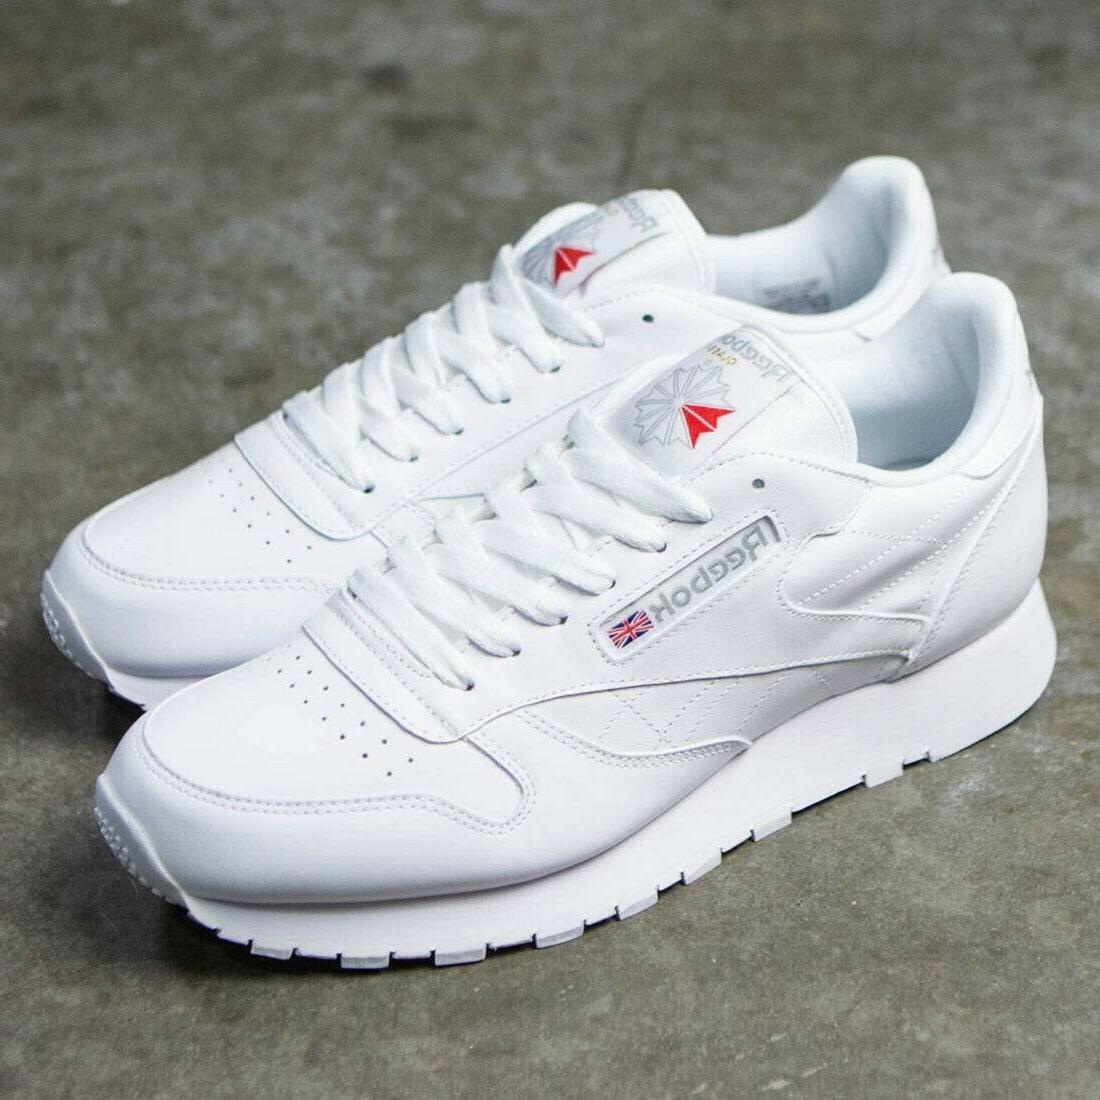 classic leather 9771 white grey red mens